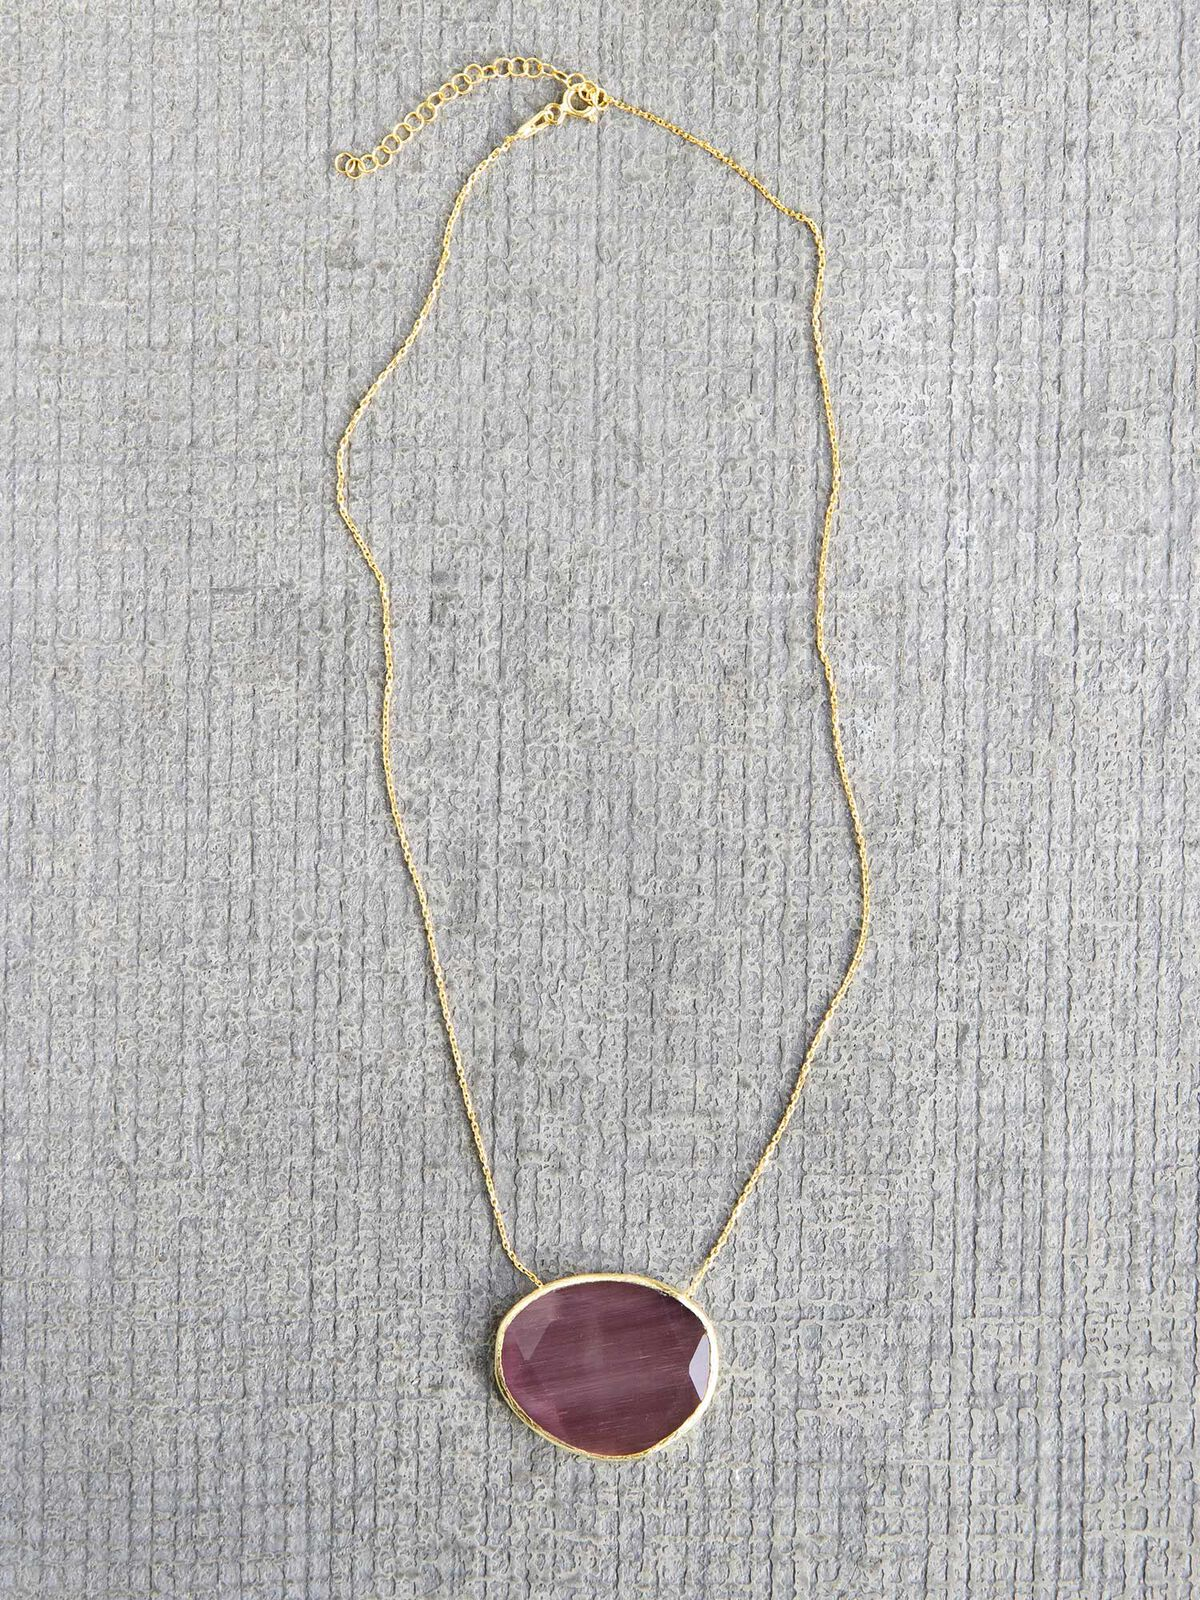 Marlyn Schiff Sterling Glass Necklace